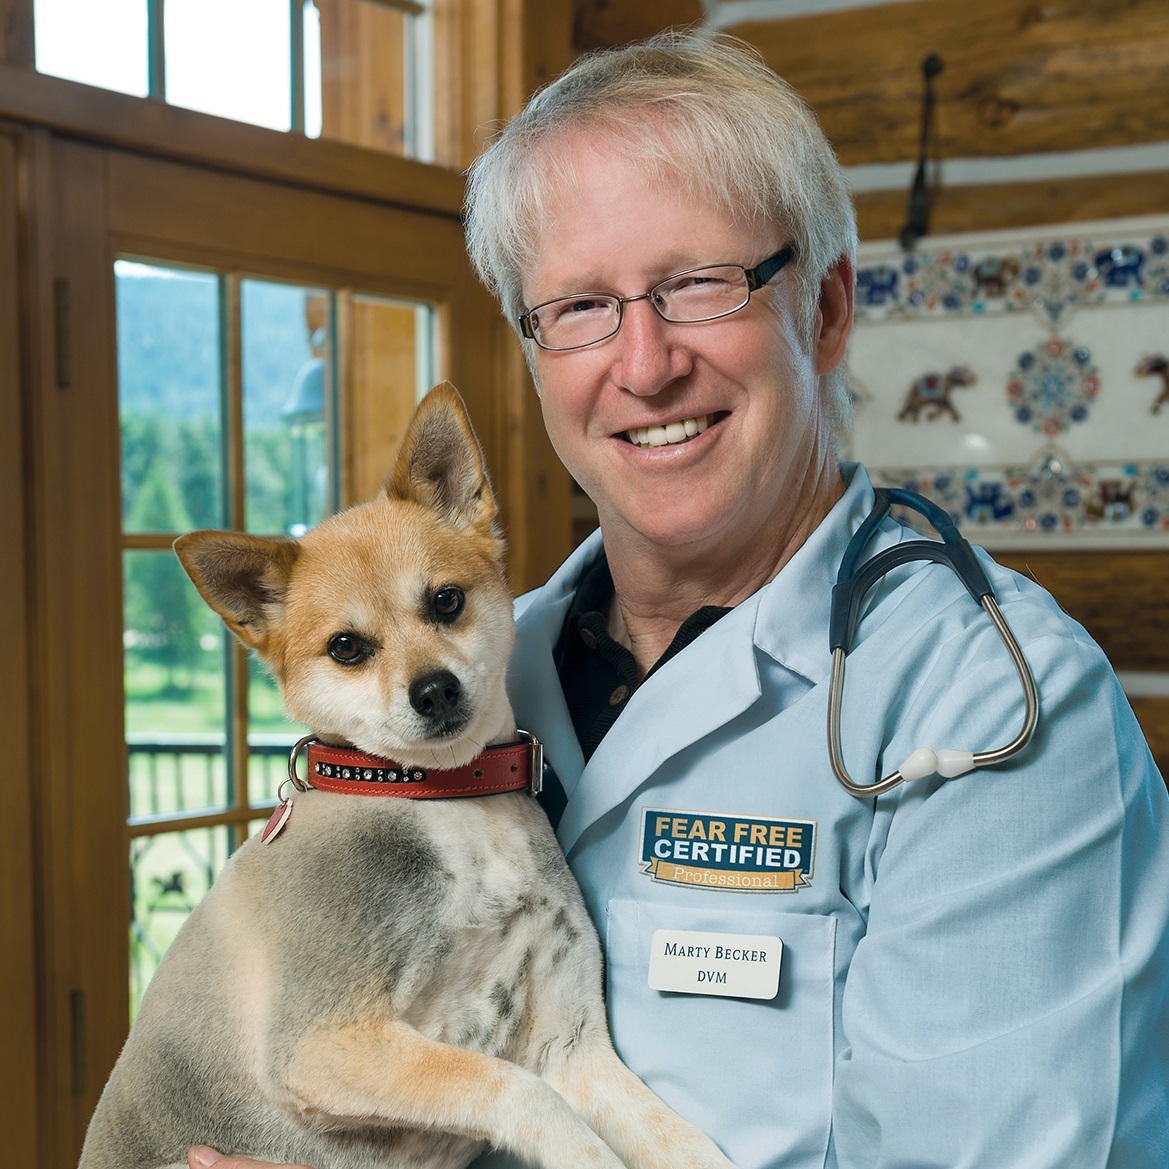 Marty Becker, DVM - Founder, Fear FreeBoard of Directors & Chief Veterinary Correspondent, American Humane AssociationFounding Member, Core Team Oz for The Dr. Oz ShowAdjunct Professor, Washington State University College of Veterinary Medicine